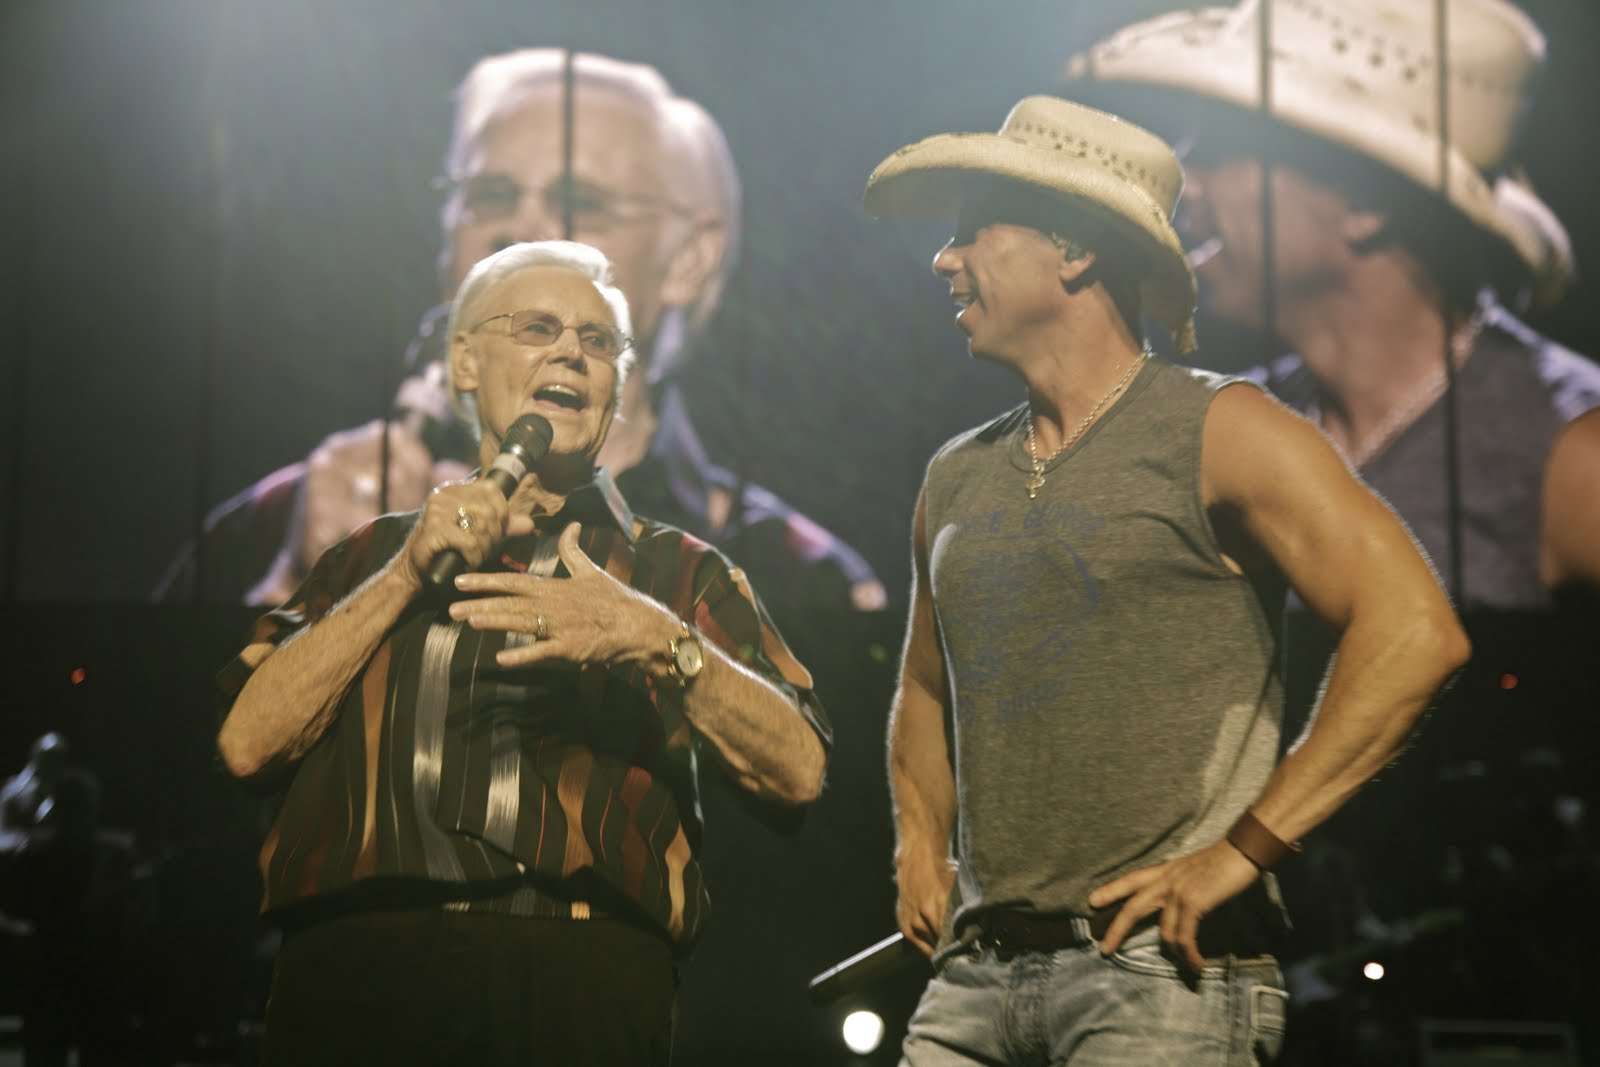 George Jones Rocking Chair Steel Ki Kenny Chesney Surprised On Stage By Country Music Icon